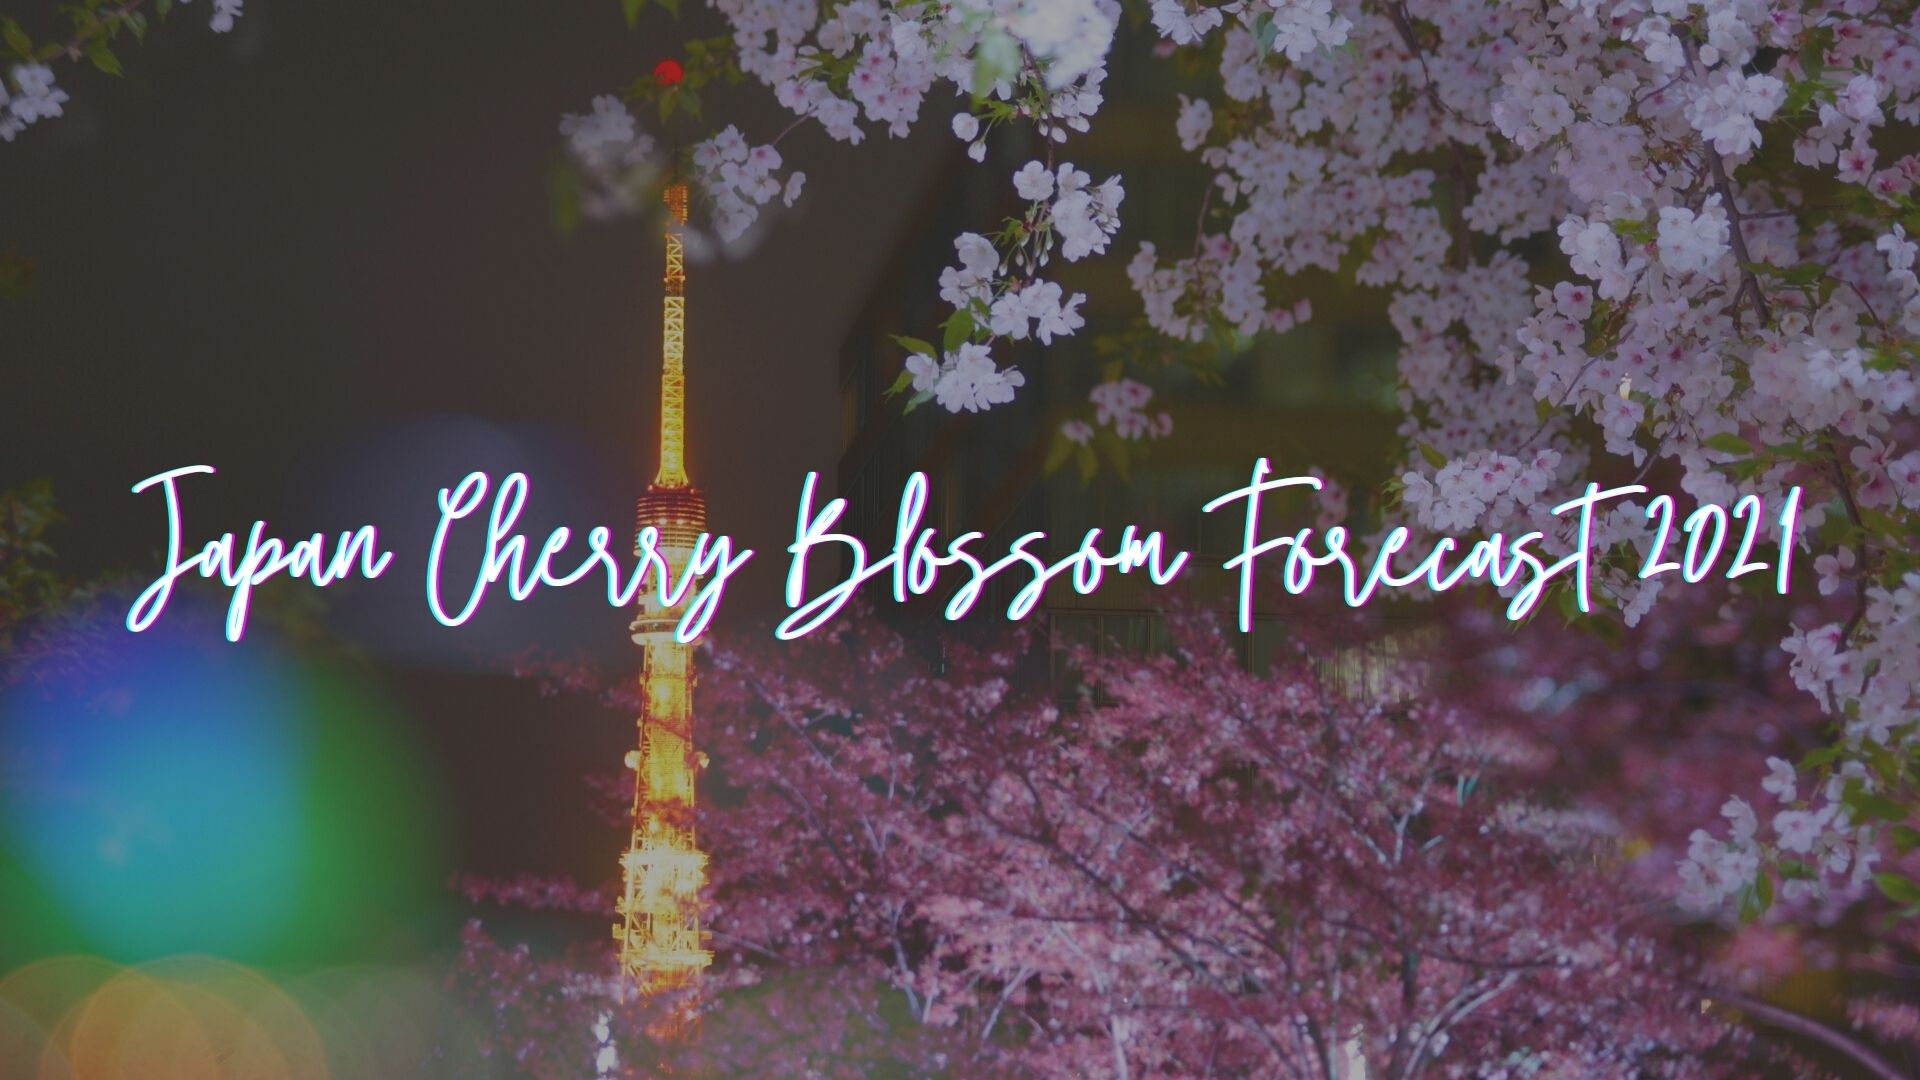 Japan Cherry Blossom Forecast 2021